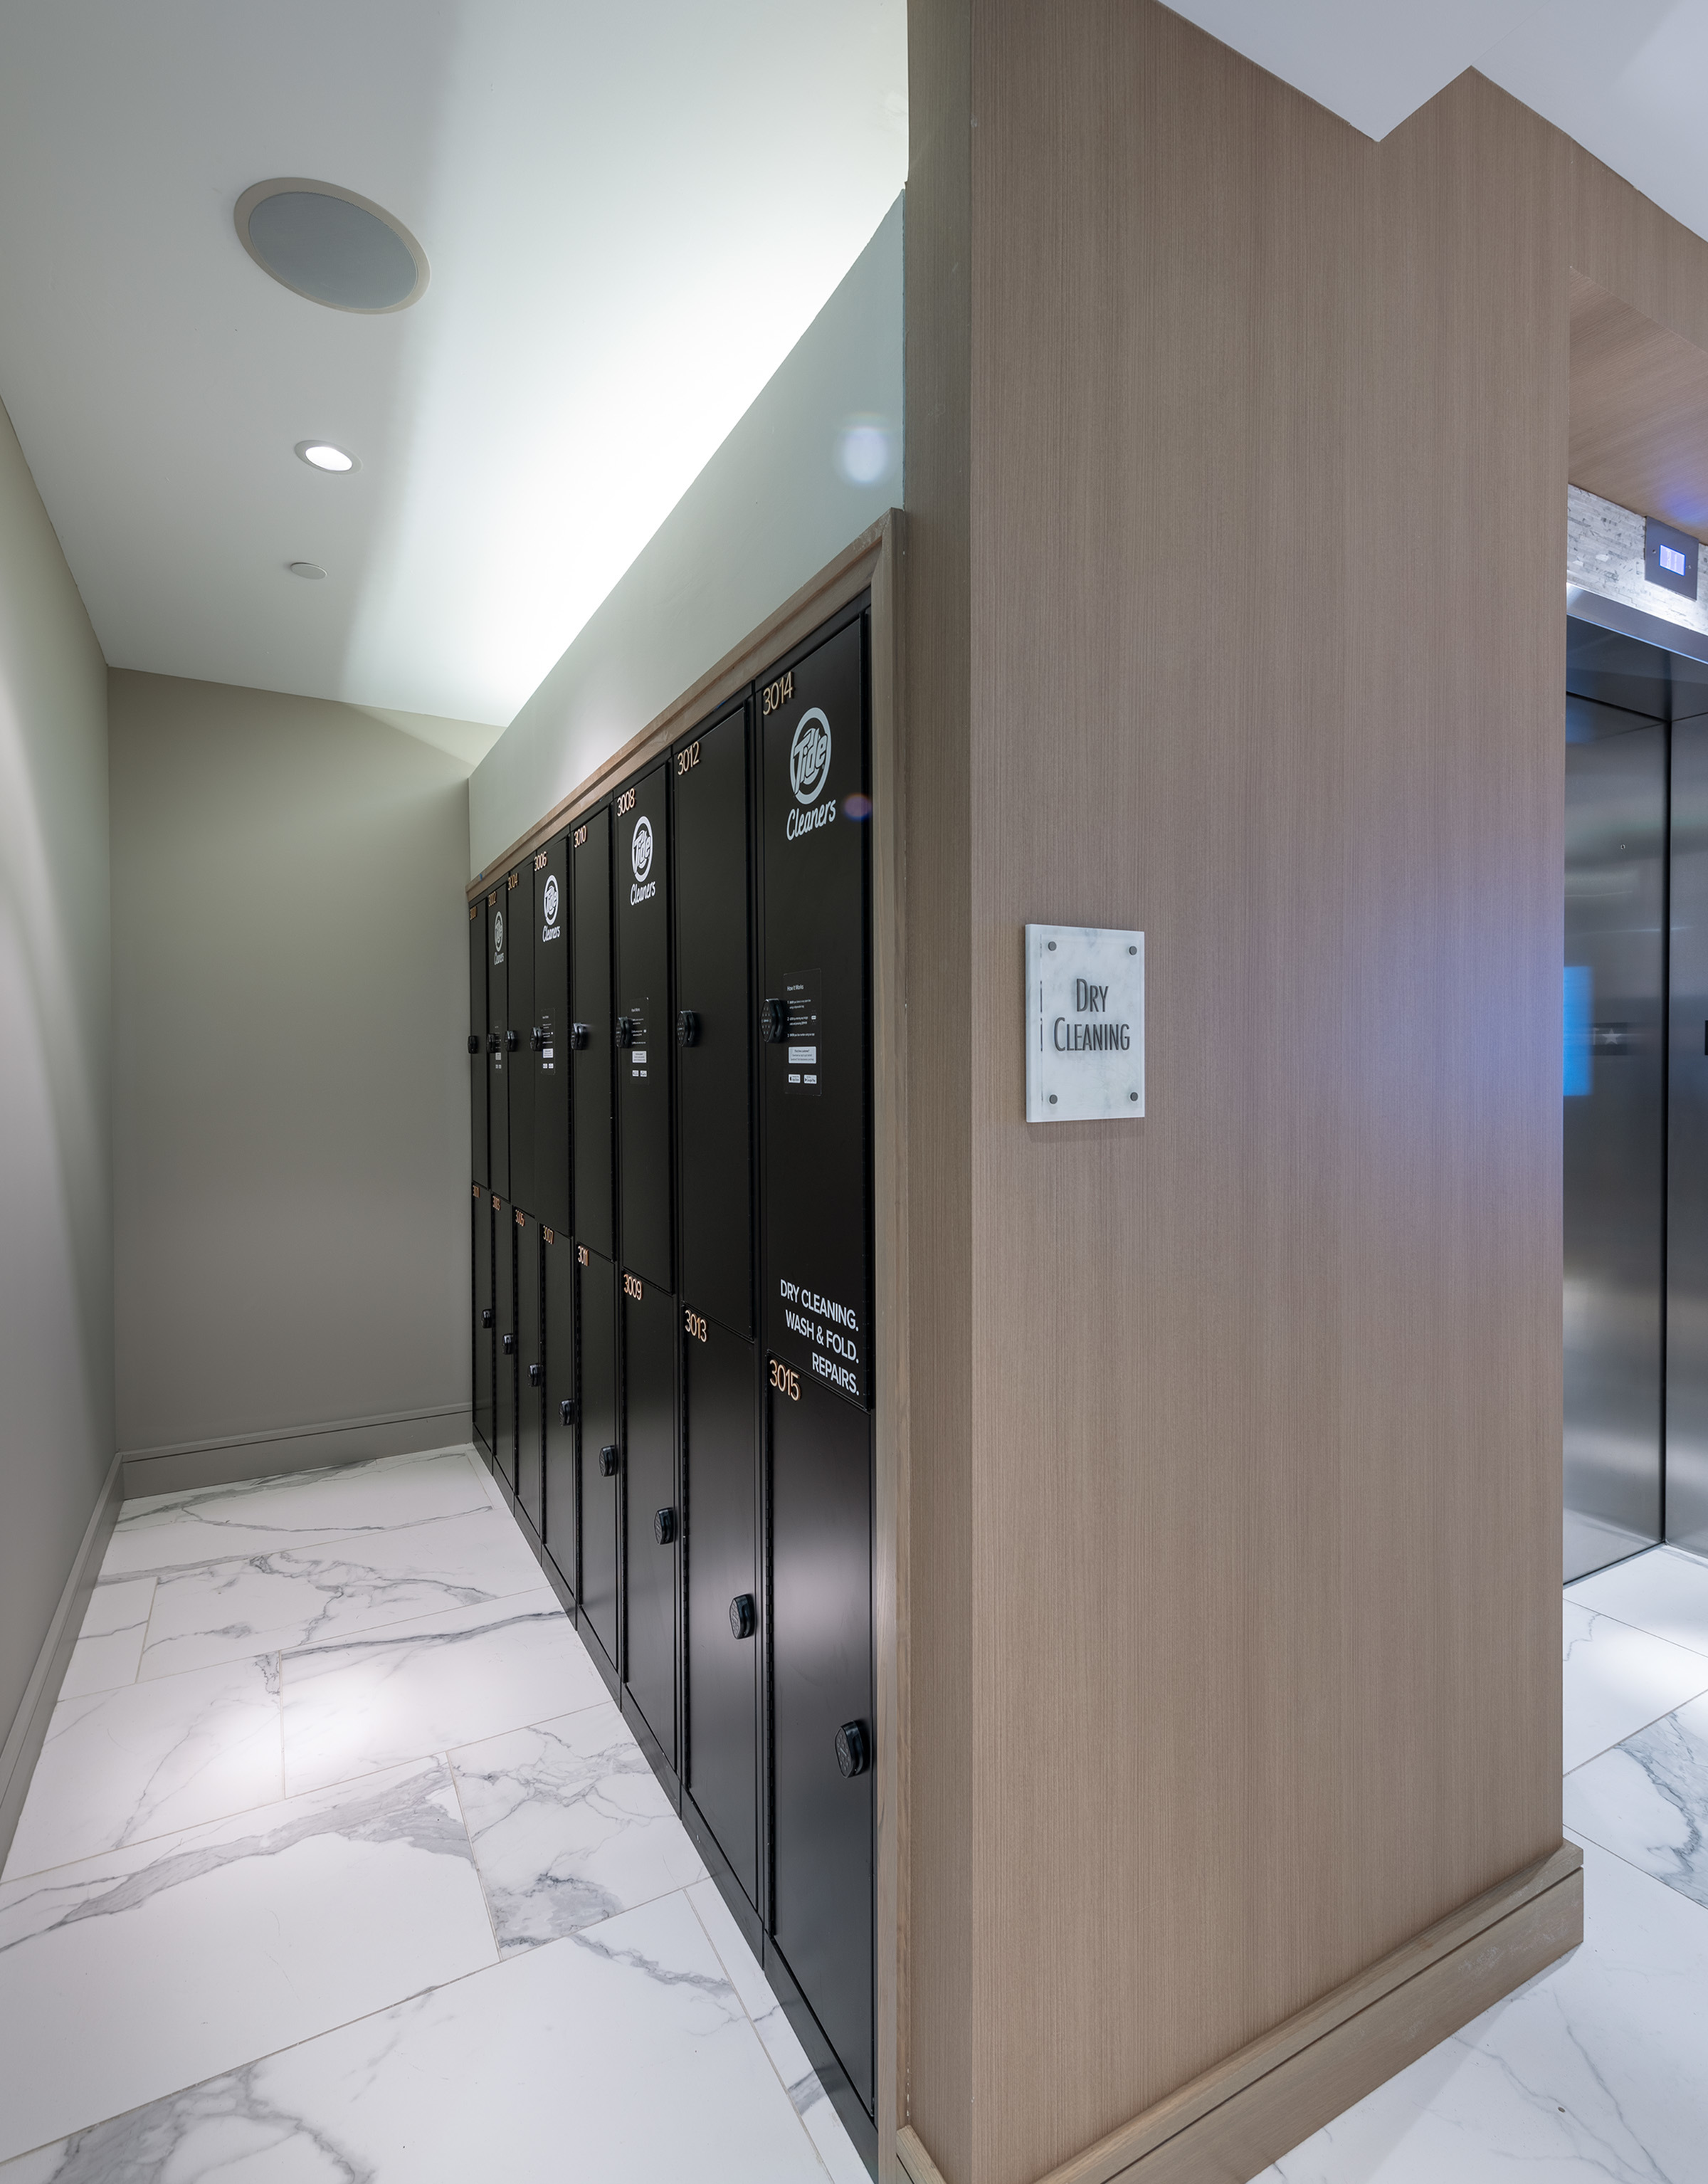 Image of Convenient on-site package lockers and dry-cleaning service for Hanover Platt Park